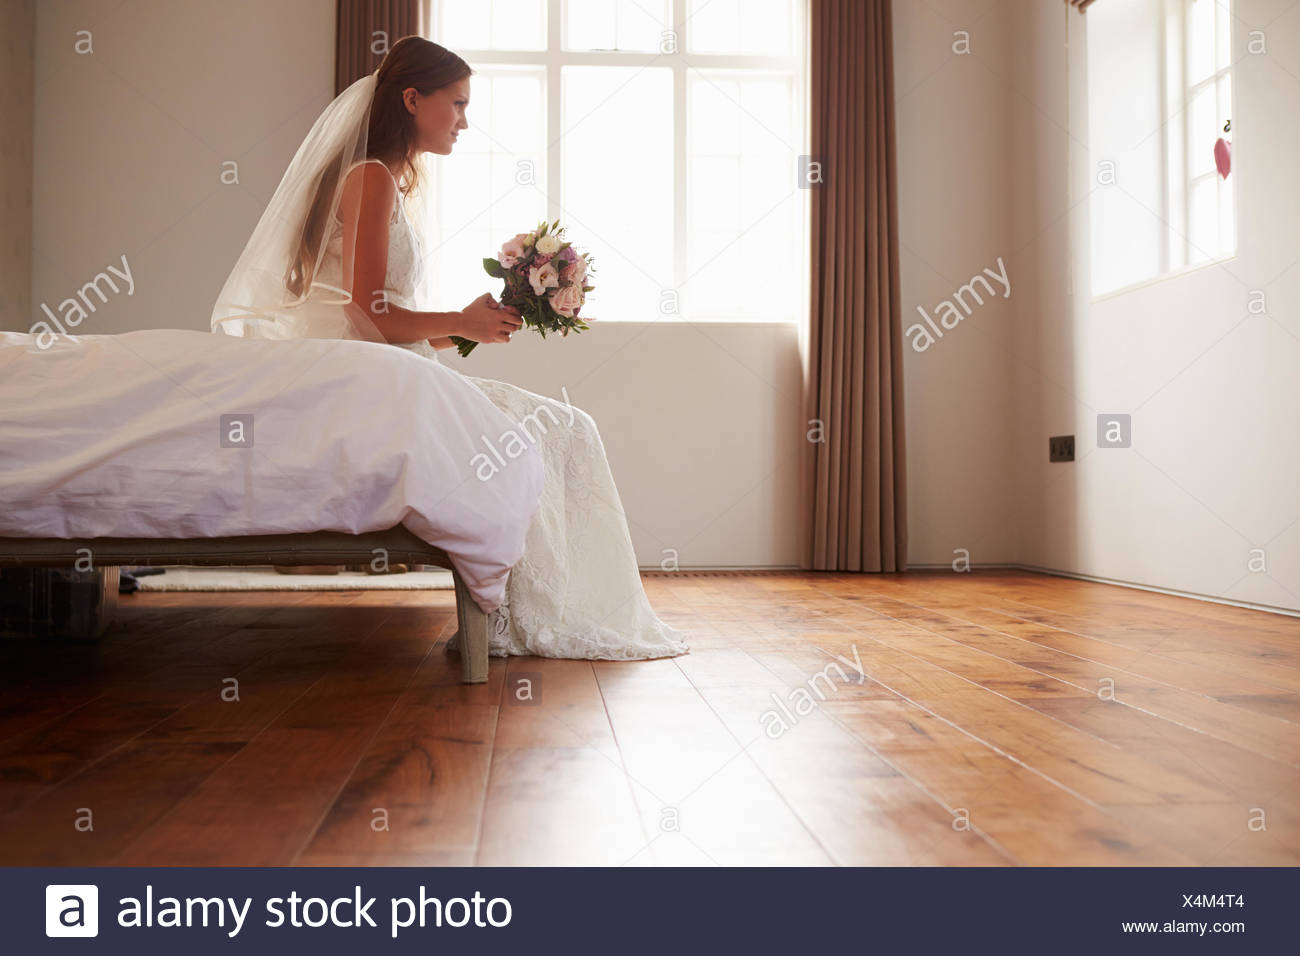 Bride In Bedroom Having Second Thoughts Before Wedding - Stock Image